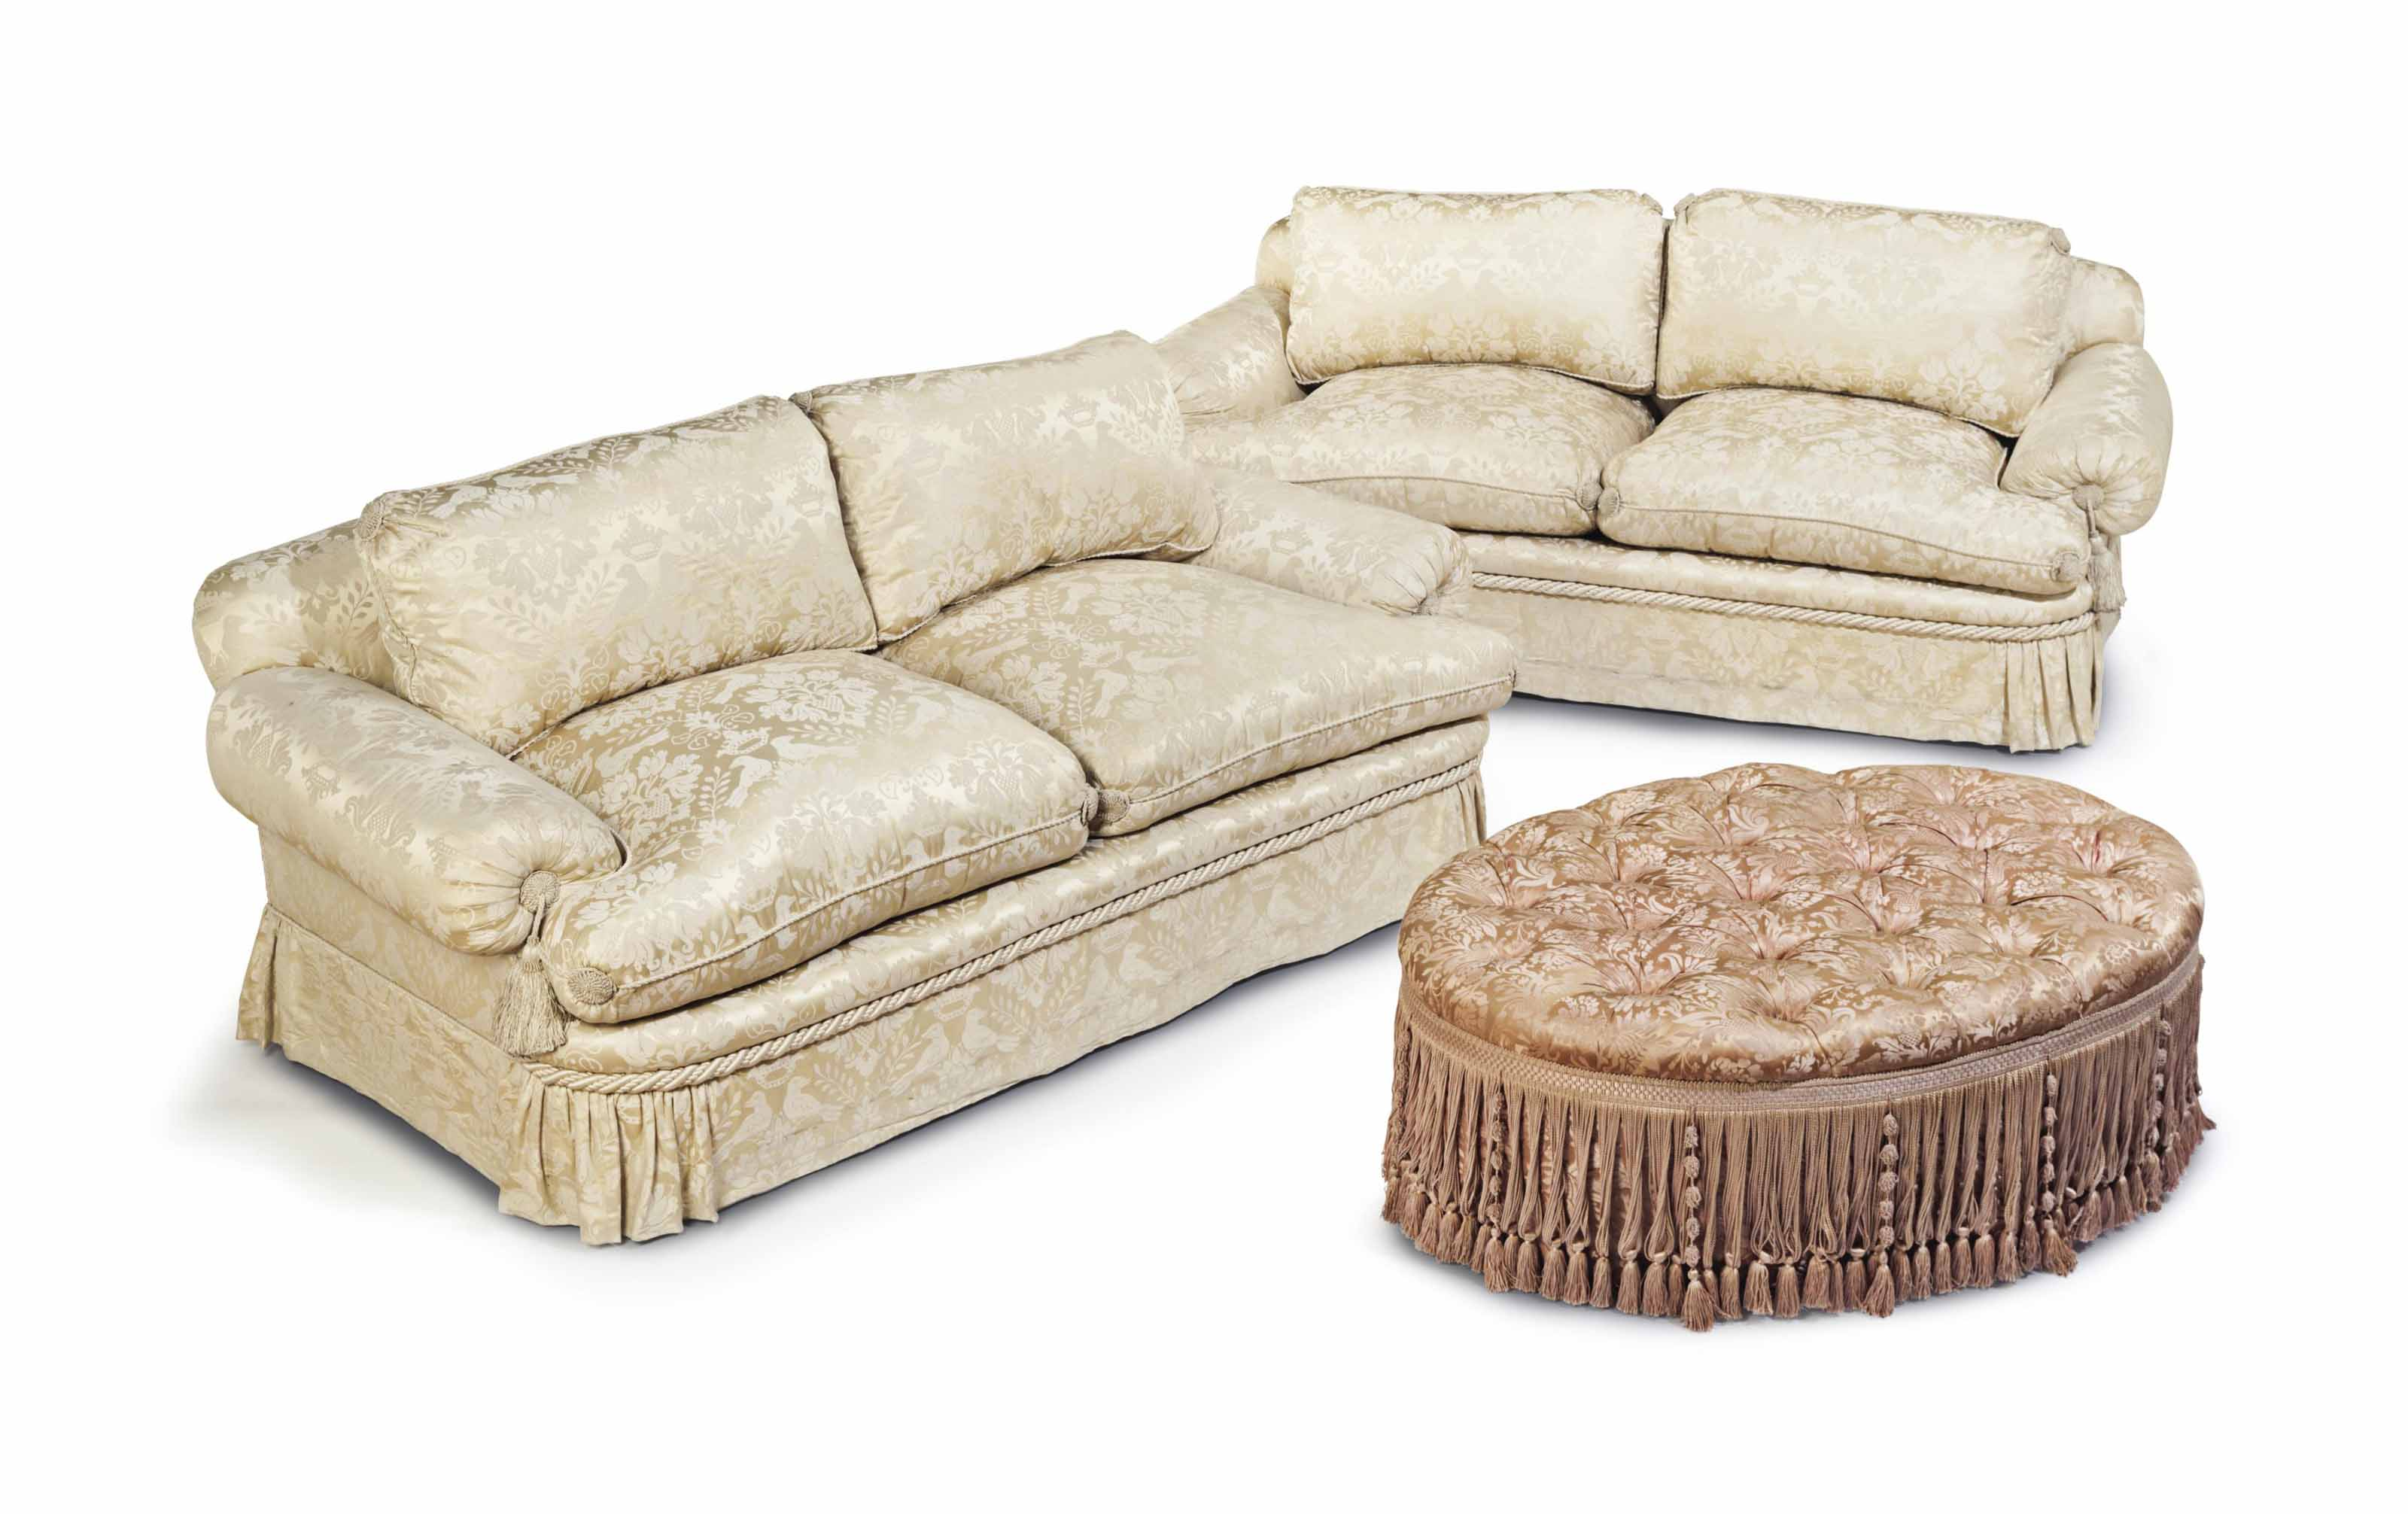 A PAIR OF UPHOLSTERED TWO-CUSH